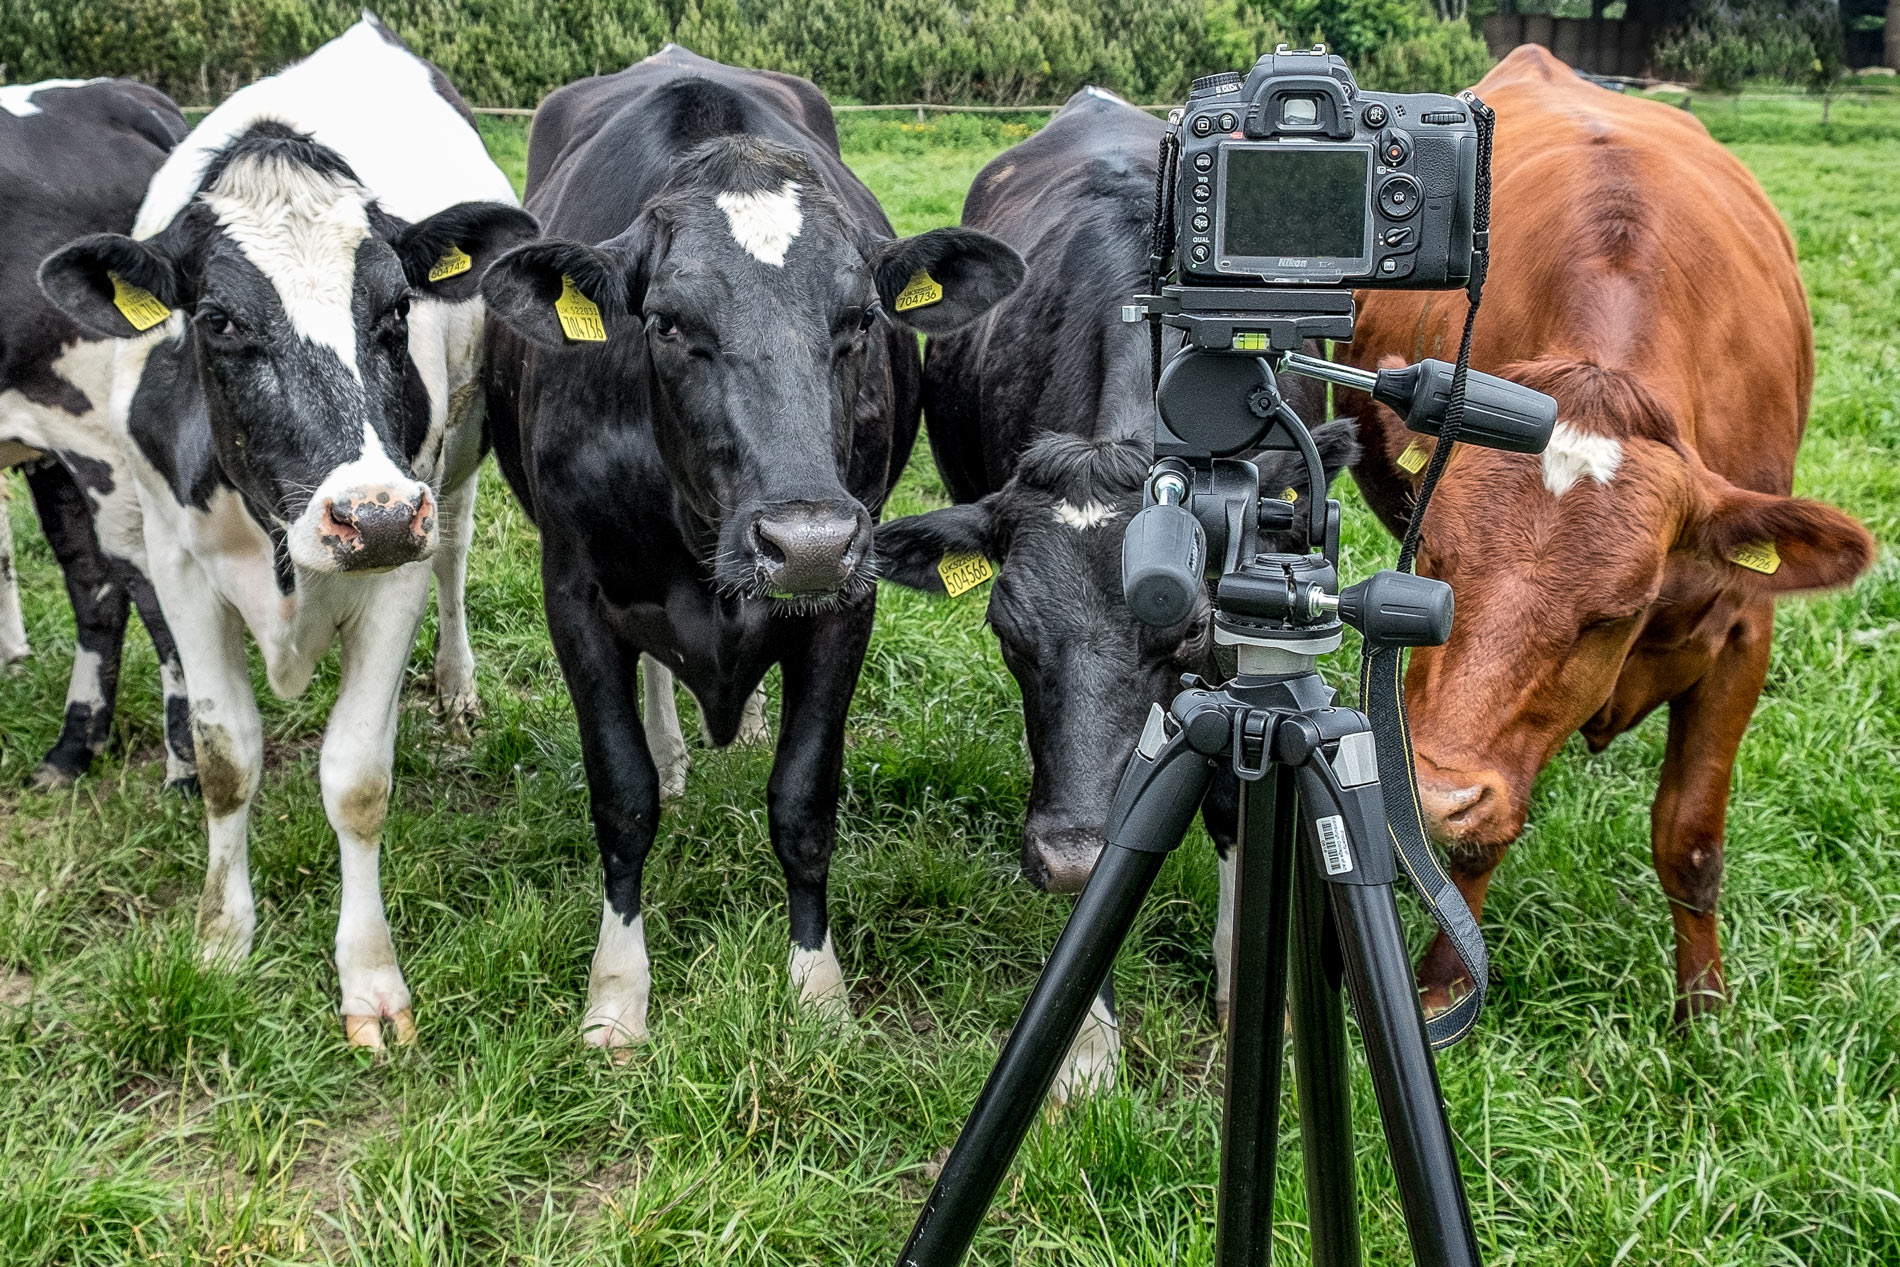 mackies-cows-with-camera-copyright-broad-daylight.jpg